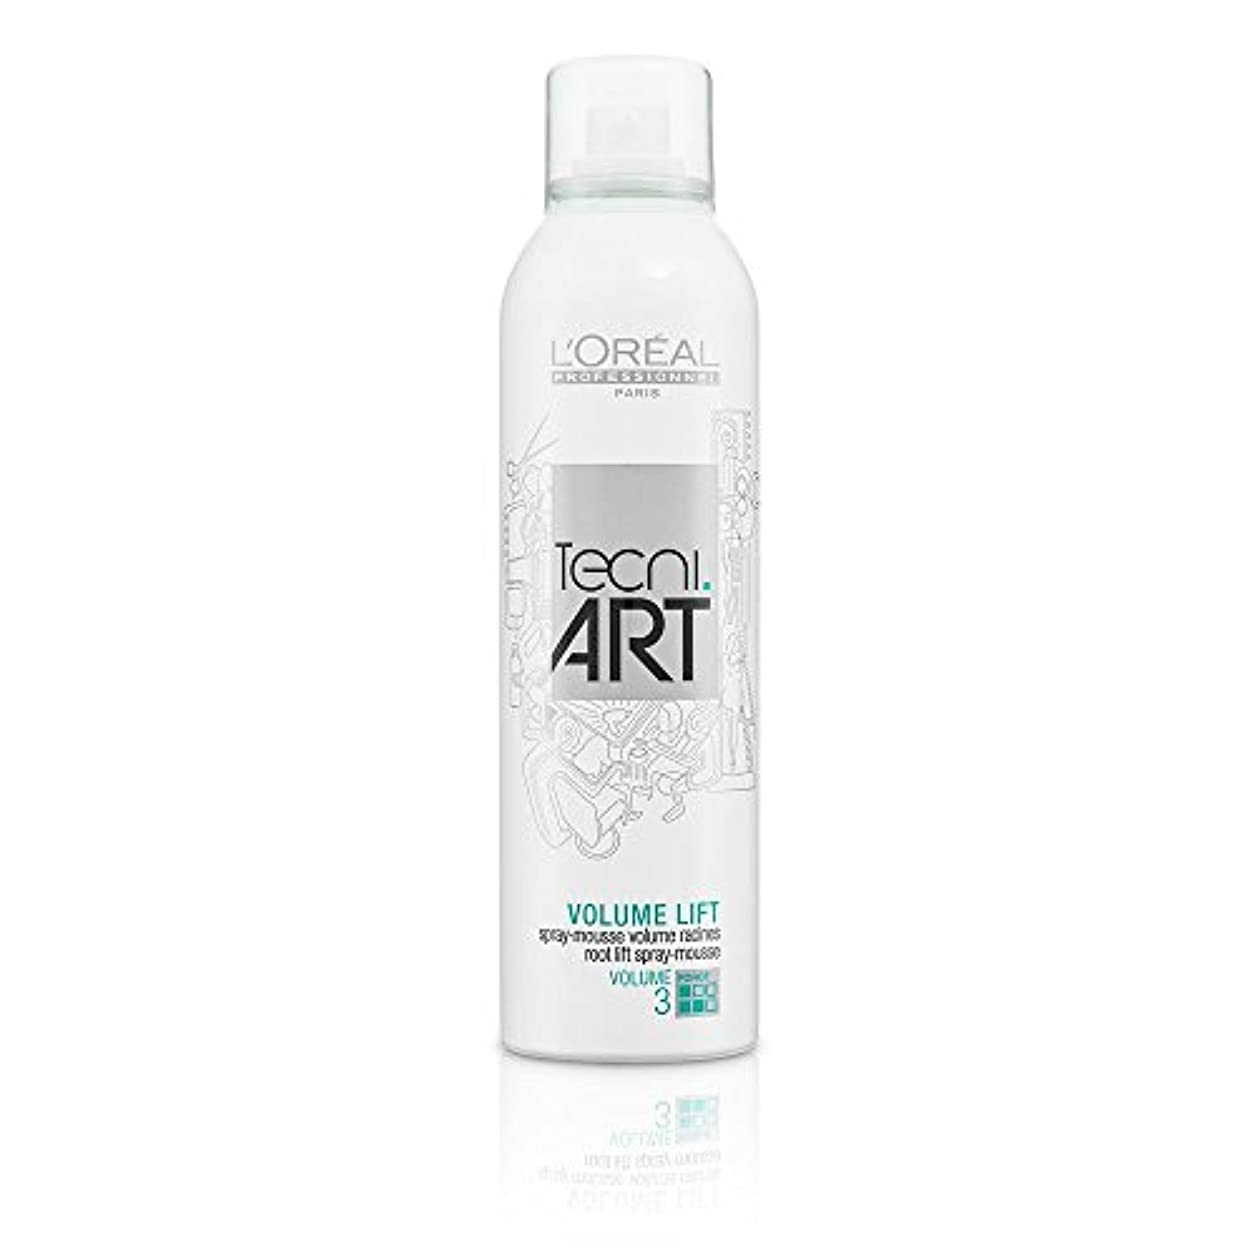 わがまま道に迷いました軍L'Oreal Tecni Art Volume Lift - Root Lift Spray - Mousse 250 ml [並行輸入品]